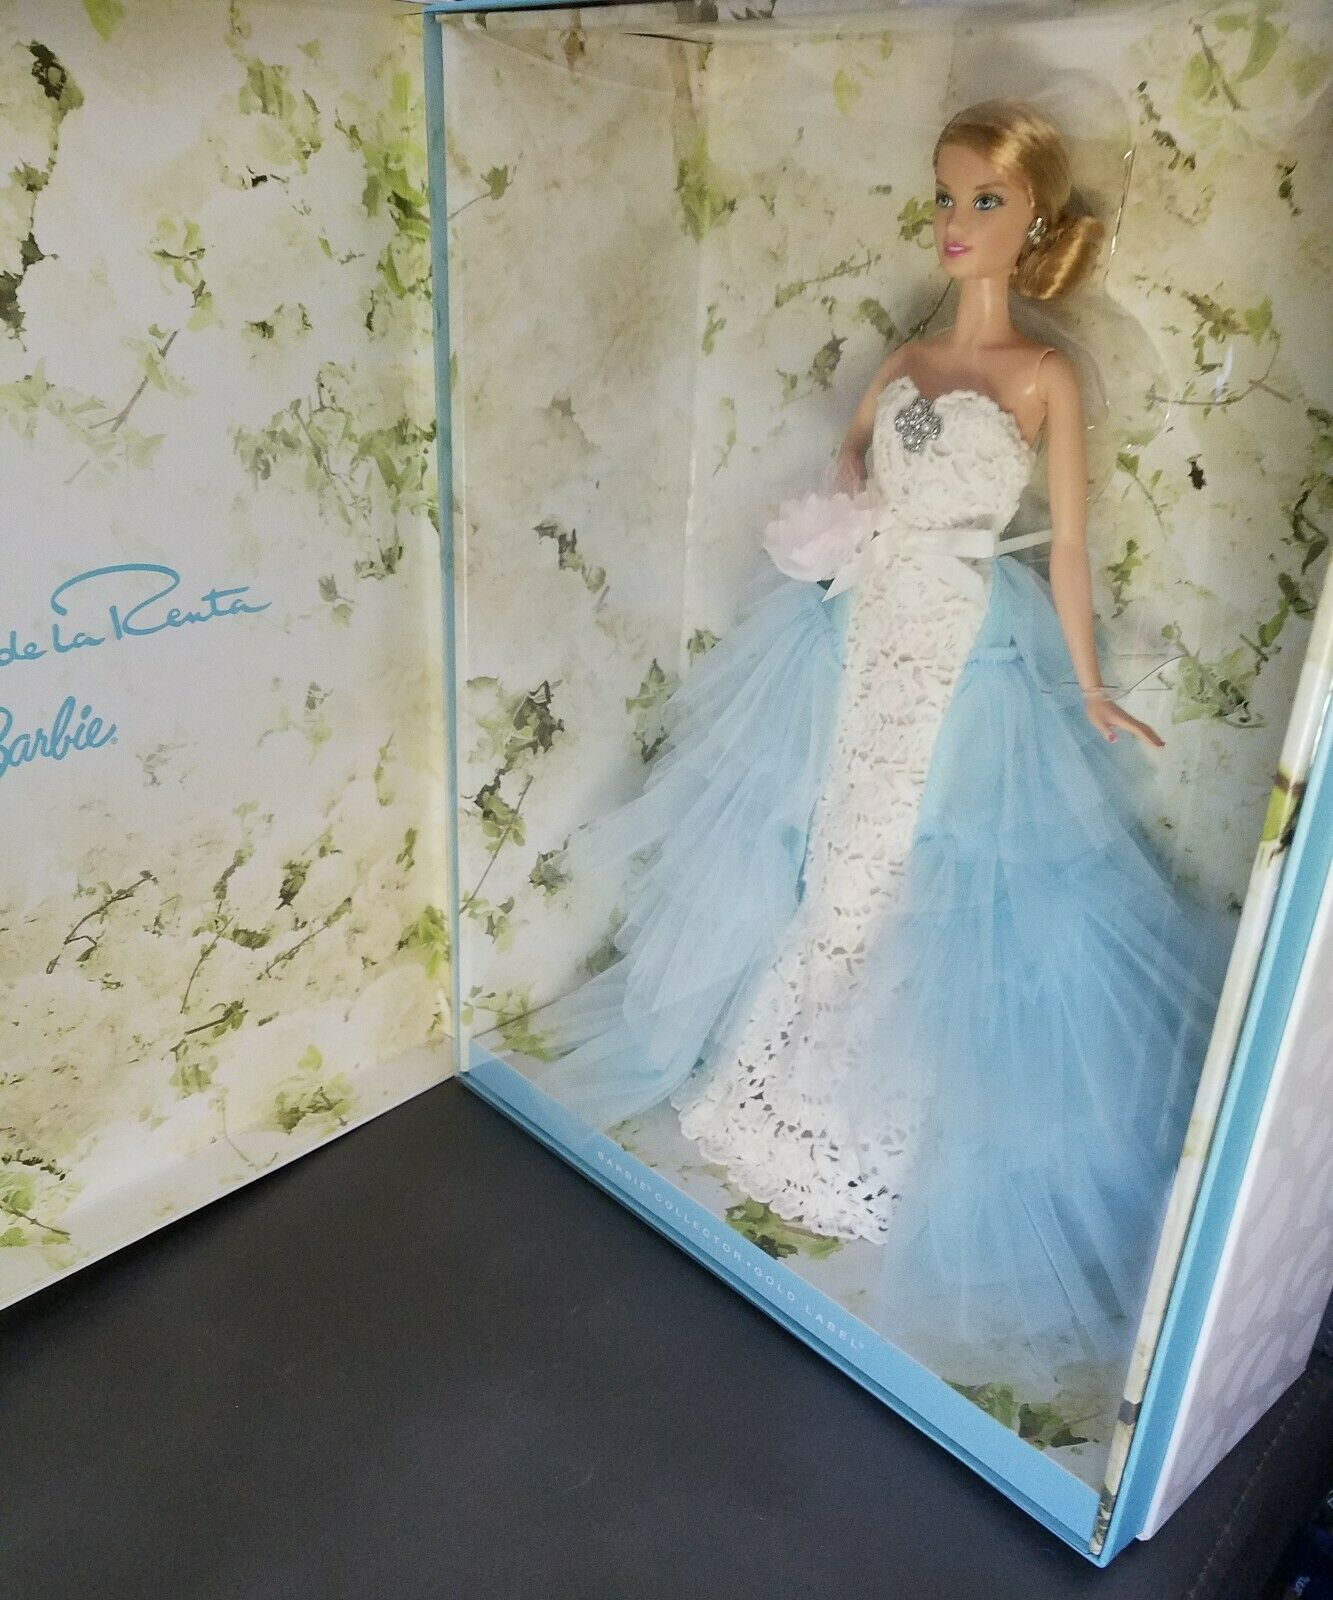 Oscar de la Renta Barbie Doll in Box - High-end Fashion Doll